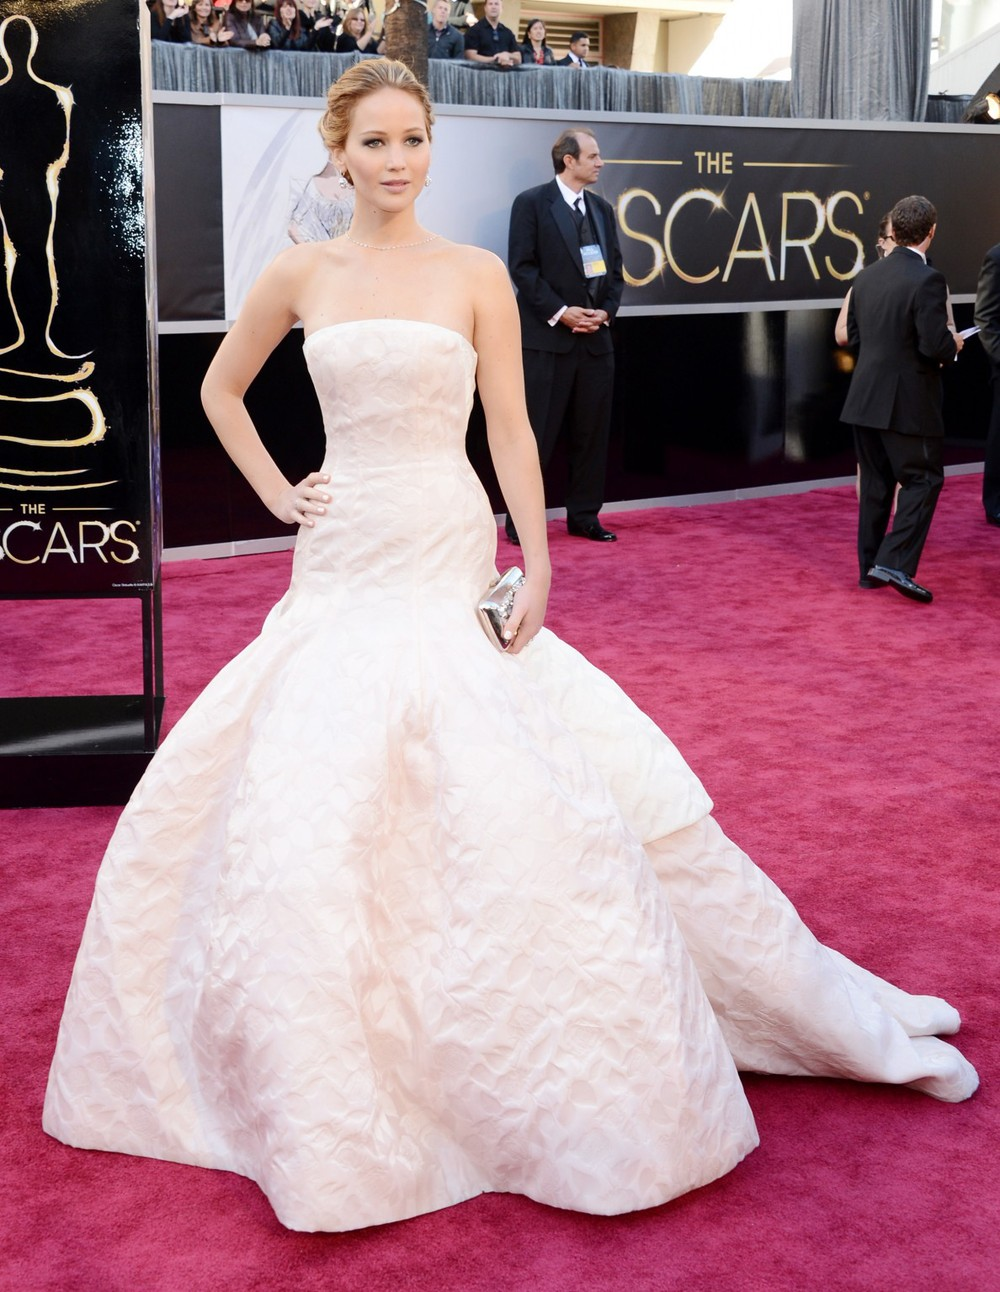 Jennifer-Lawrence-2013-Oscars-Red-Carpet-Dresses.jpg